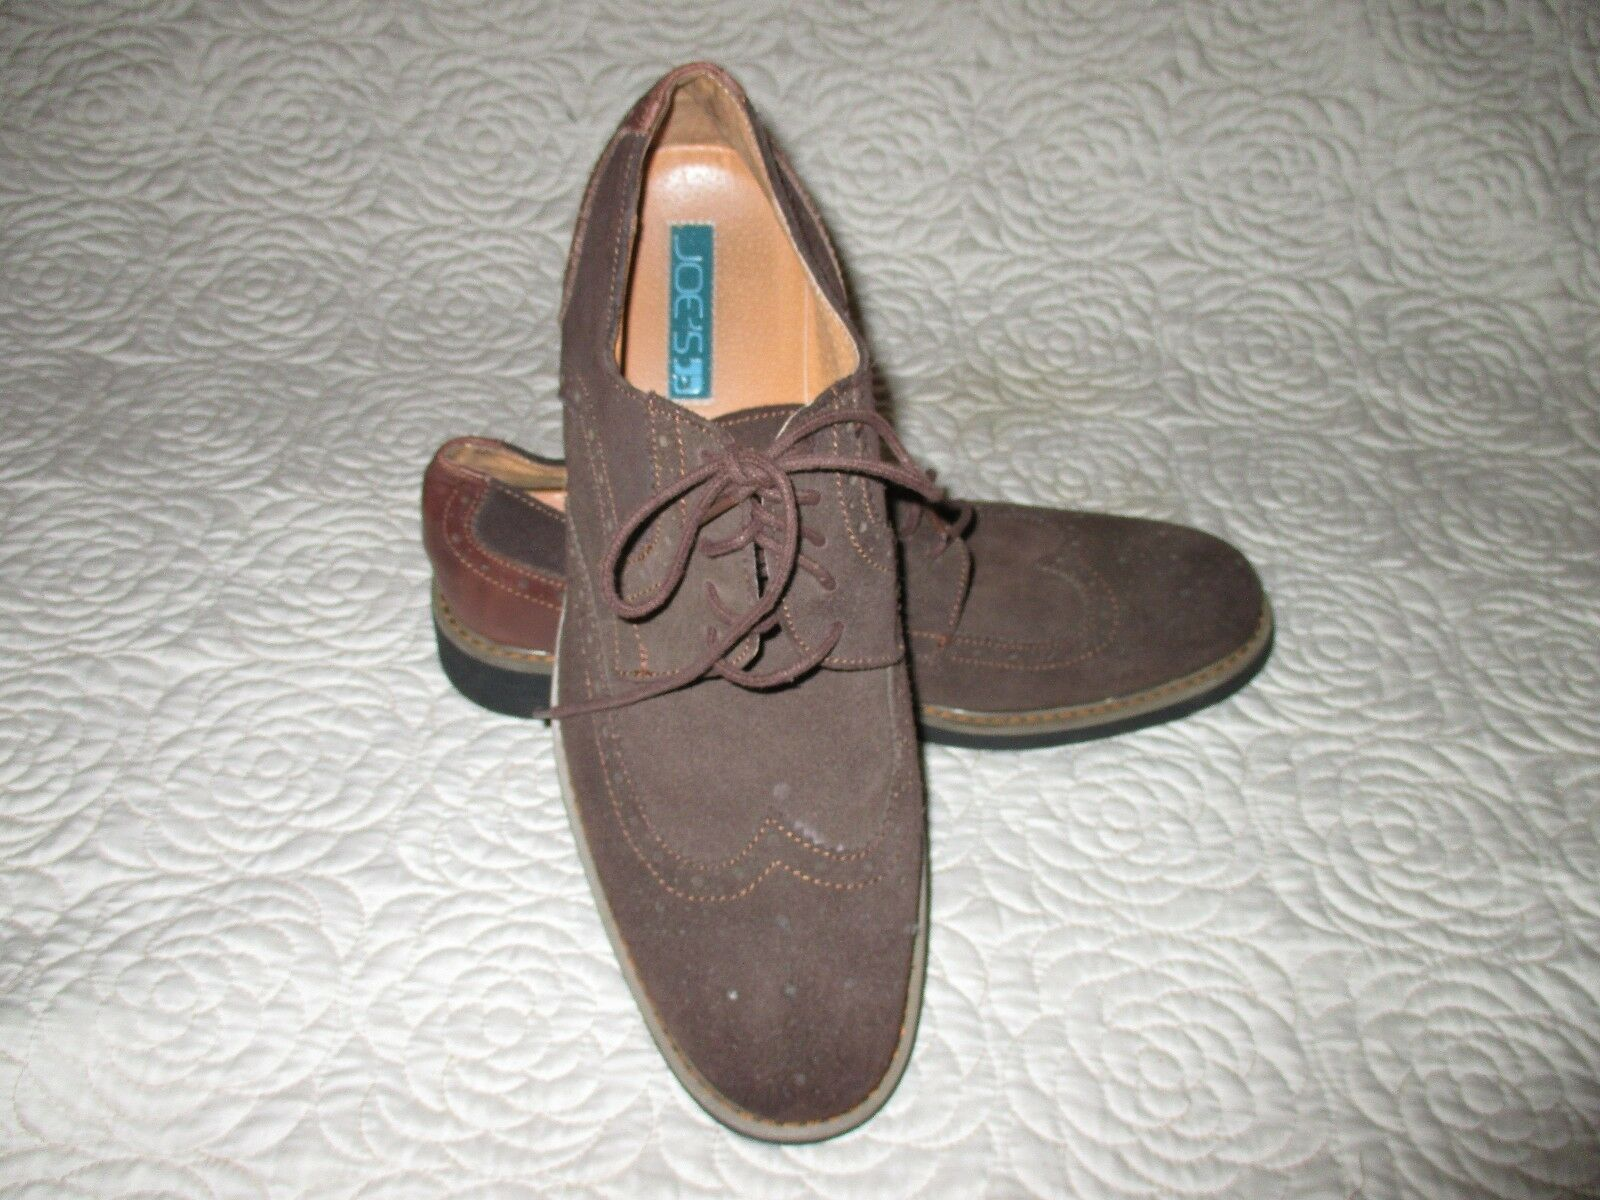 Joe's  Suede leather Oxford shoes Lace Up Brown Size  10